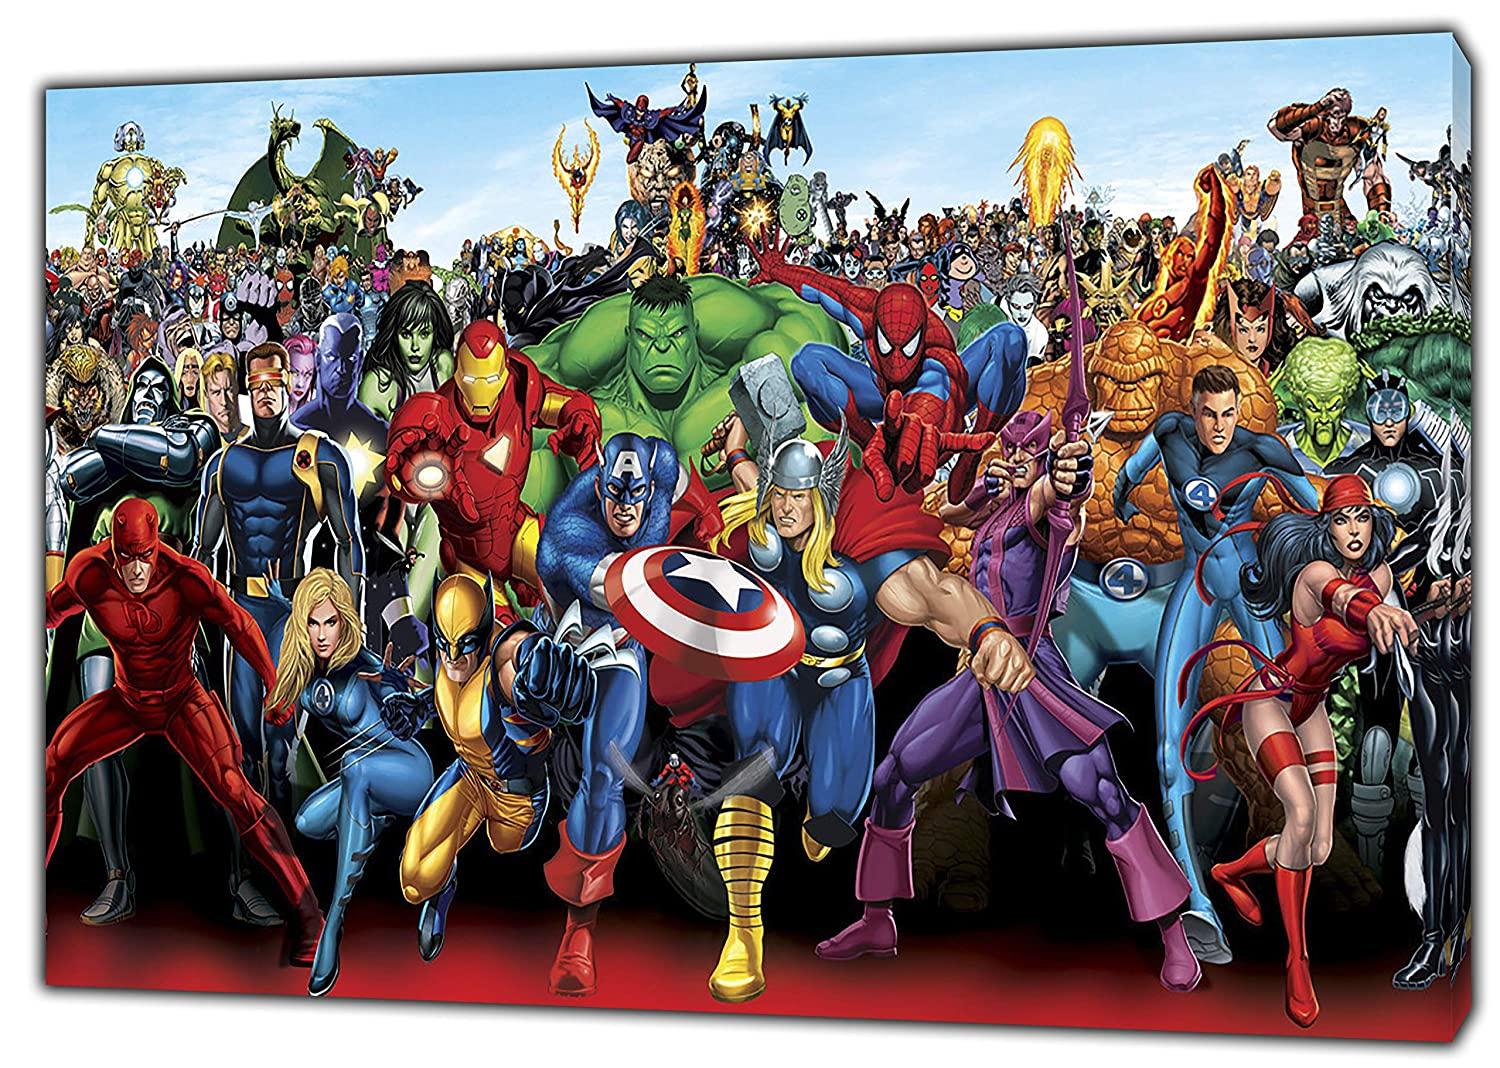 Marvel Superheroes Characters Photo/Picture Print ON Framed Canvas Wall Art Home Decoration 12''x 8''inch -18mm Depth ARTSPRINTS